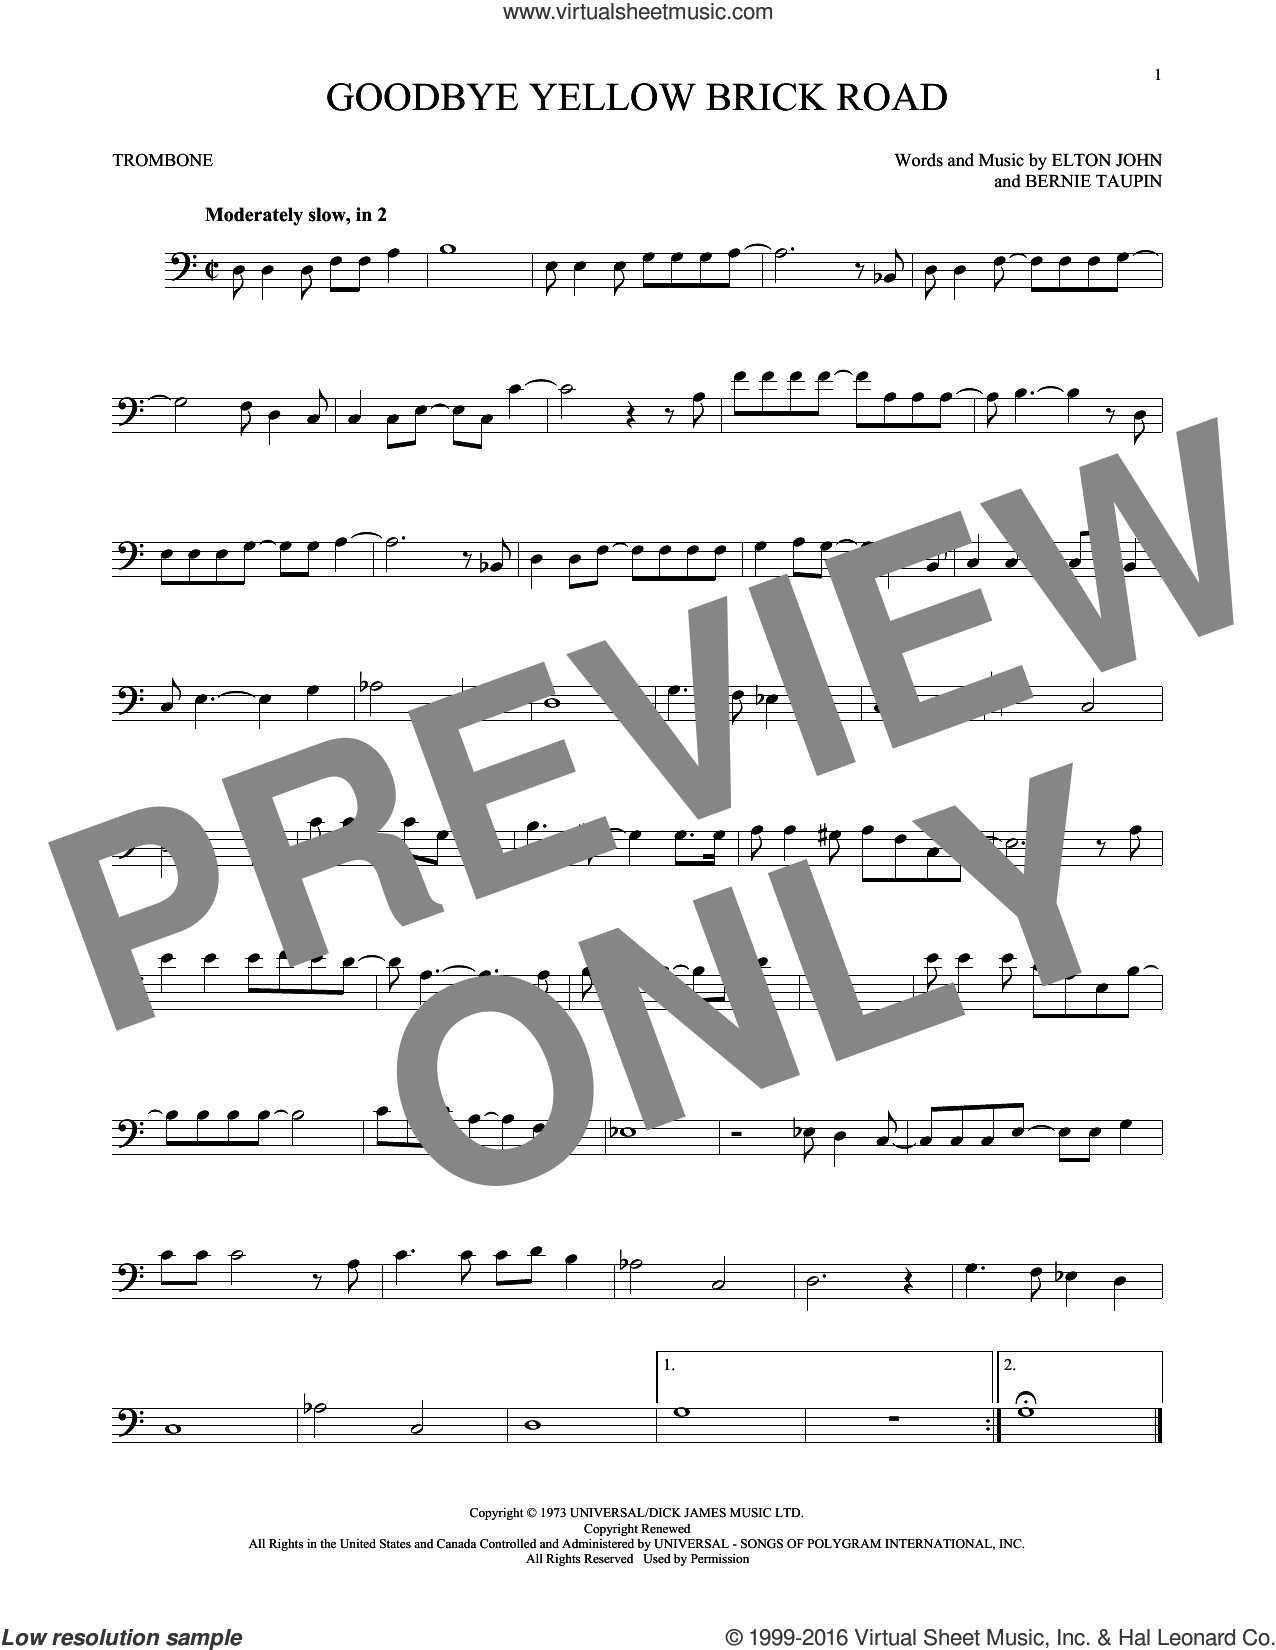 Goodbye Yellow Brick Road sheet music for trombone solo by Elton John and Bernie Taupin, intermediate skill level